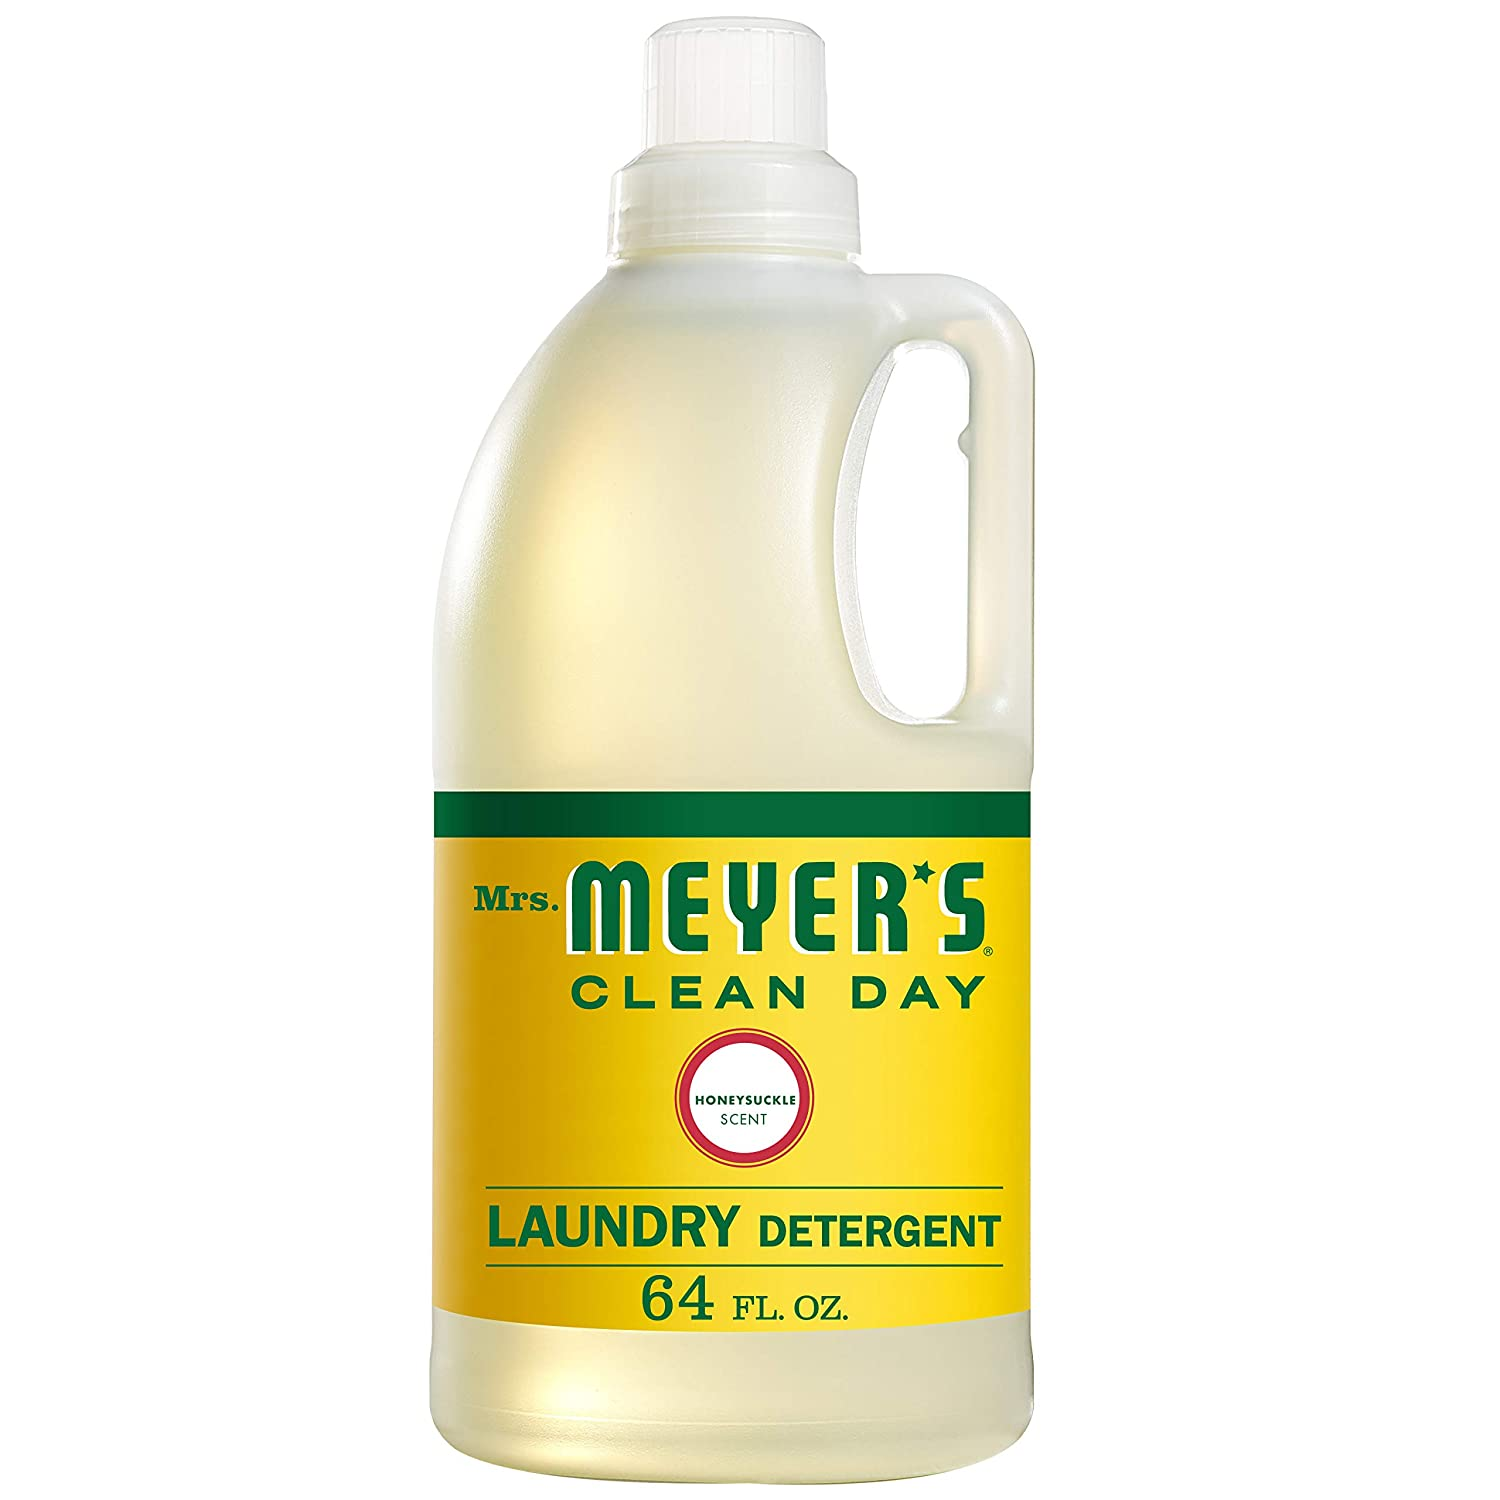 Mrs. Meyers Clean Day Laundry Detergent, Honeysuckle, 64 fl oz